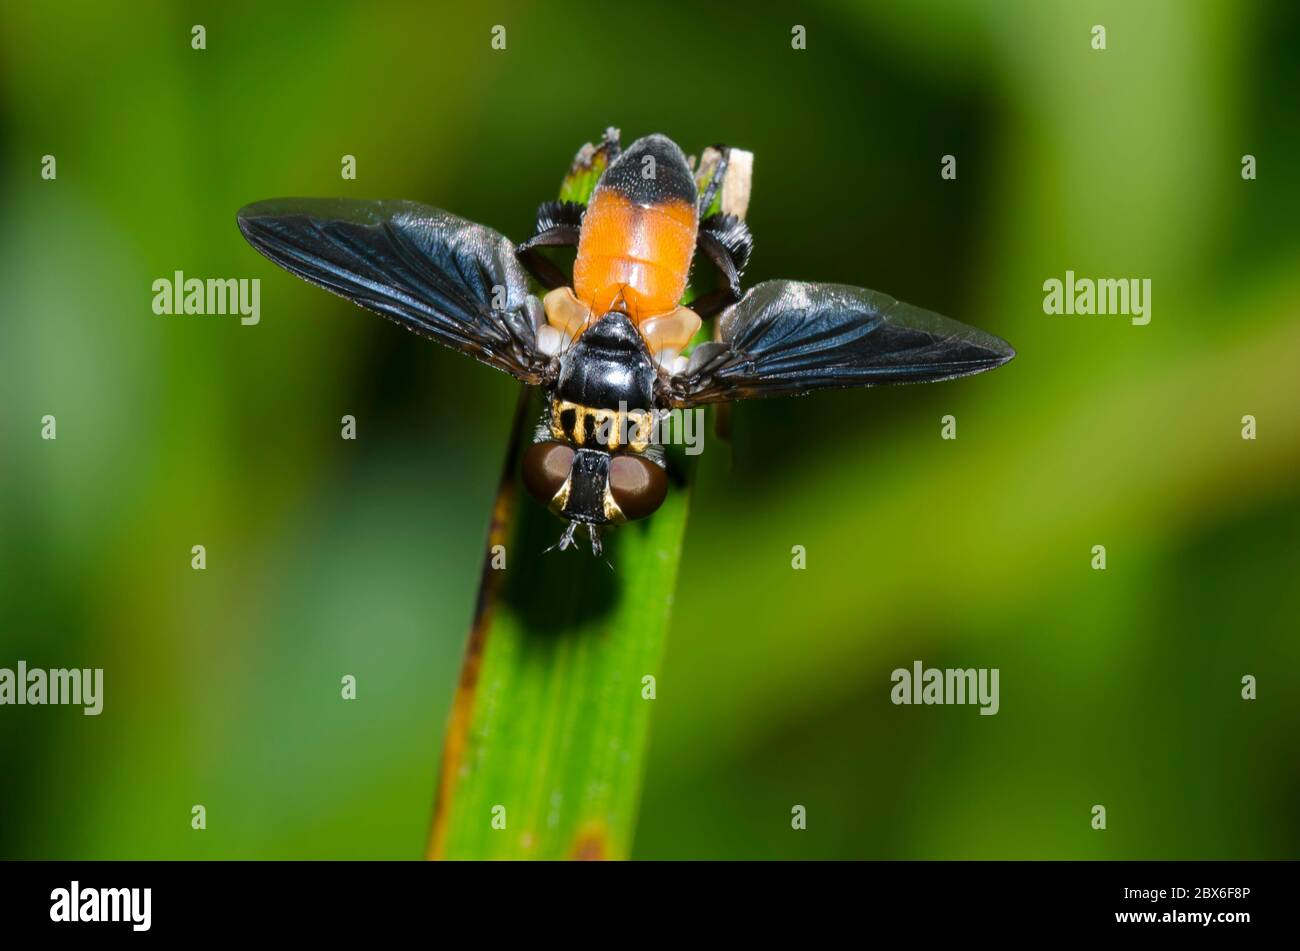 Feather-legged Fly, Trichopoda sp. Stock Photo